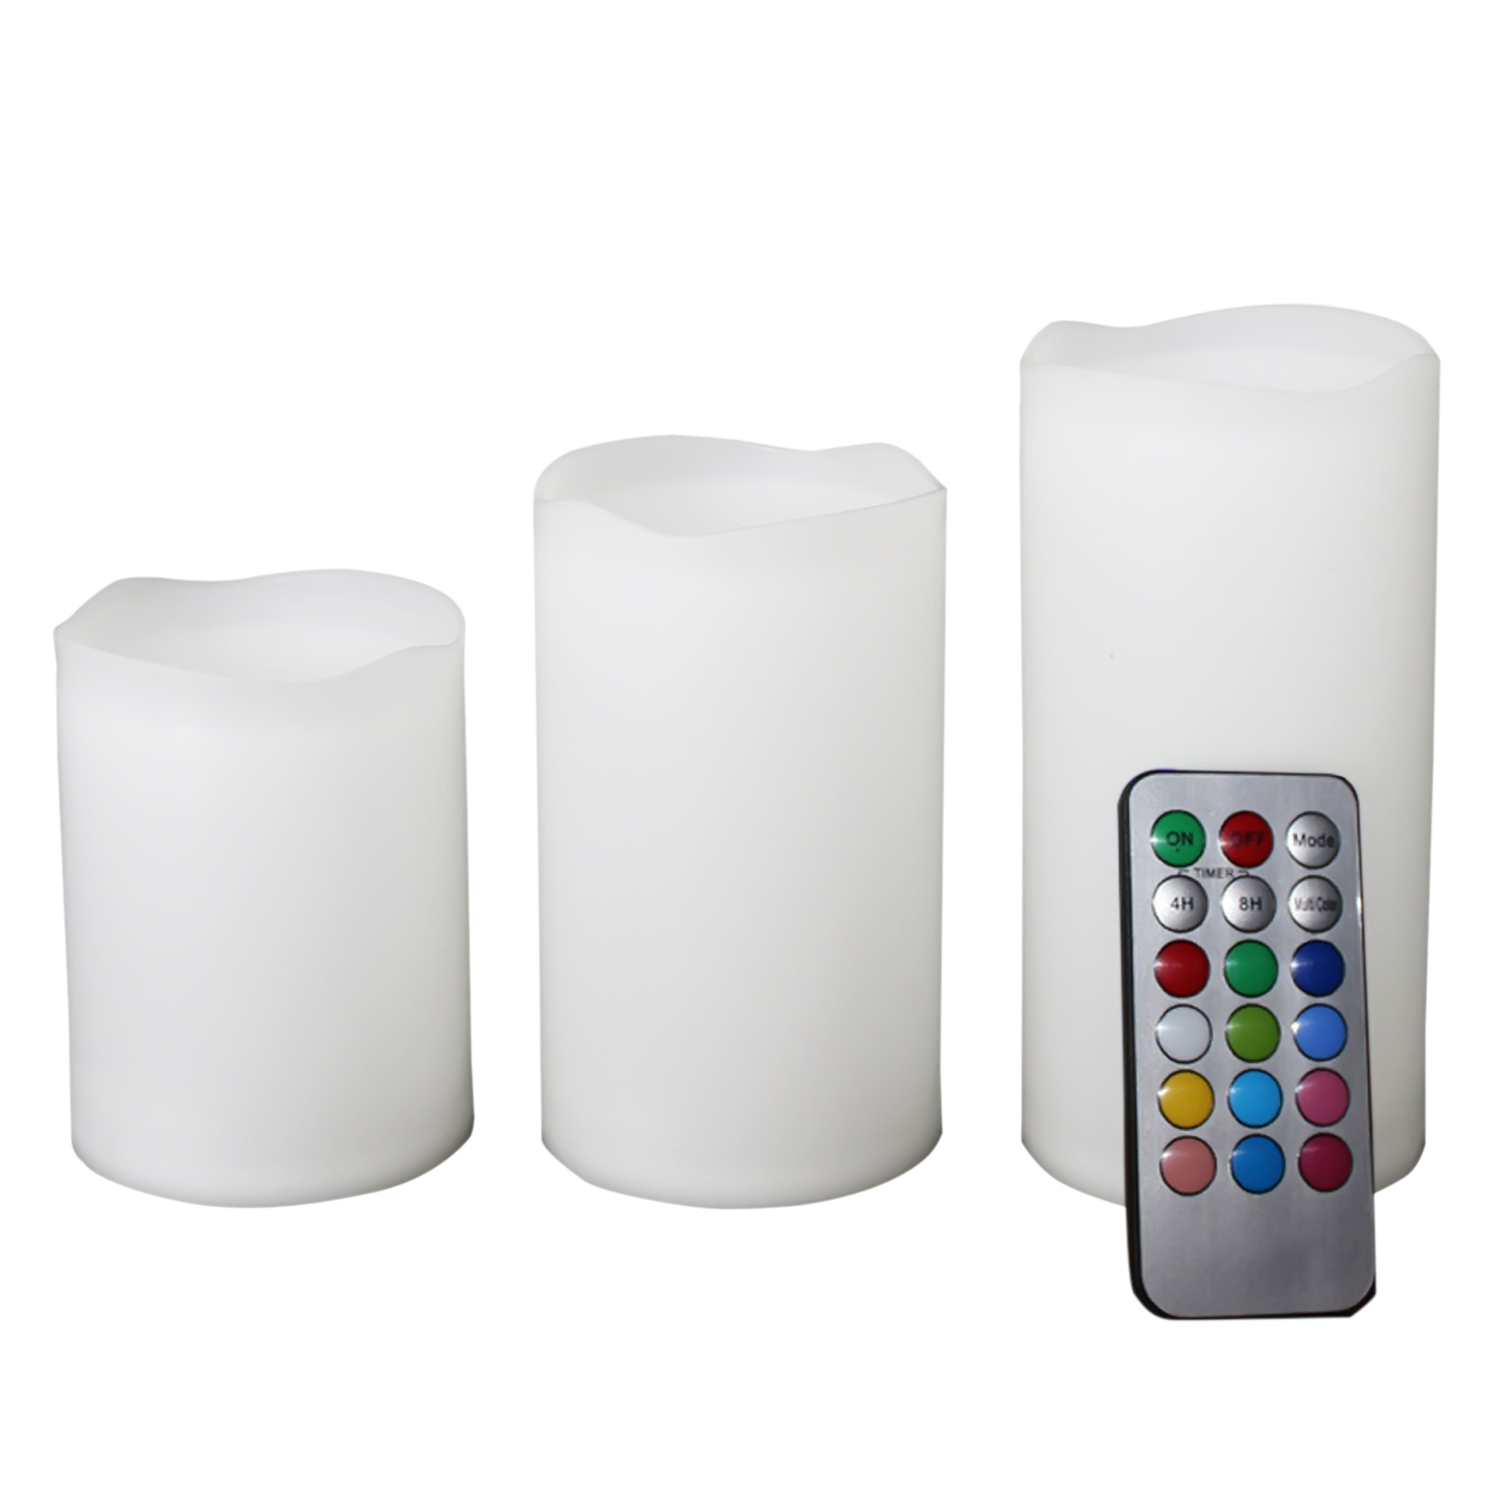 3pc candle wireless remote control candle velas operated led flameless candles bougie light set. Black Bedroom Furniture Sets. Home Design Ideas